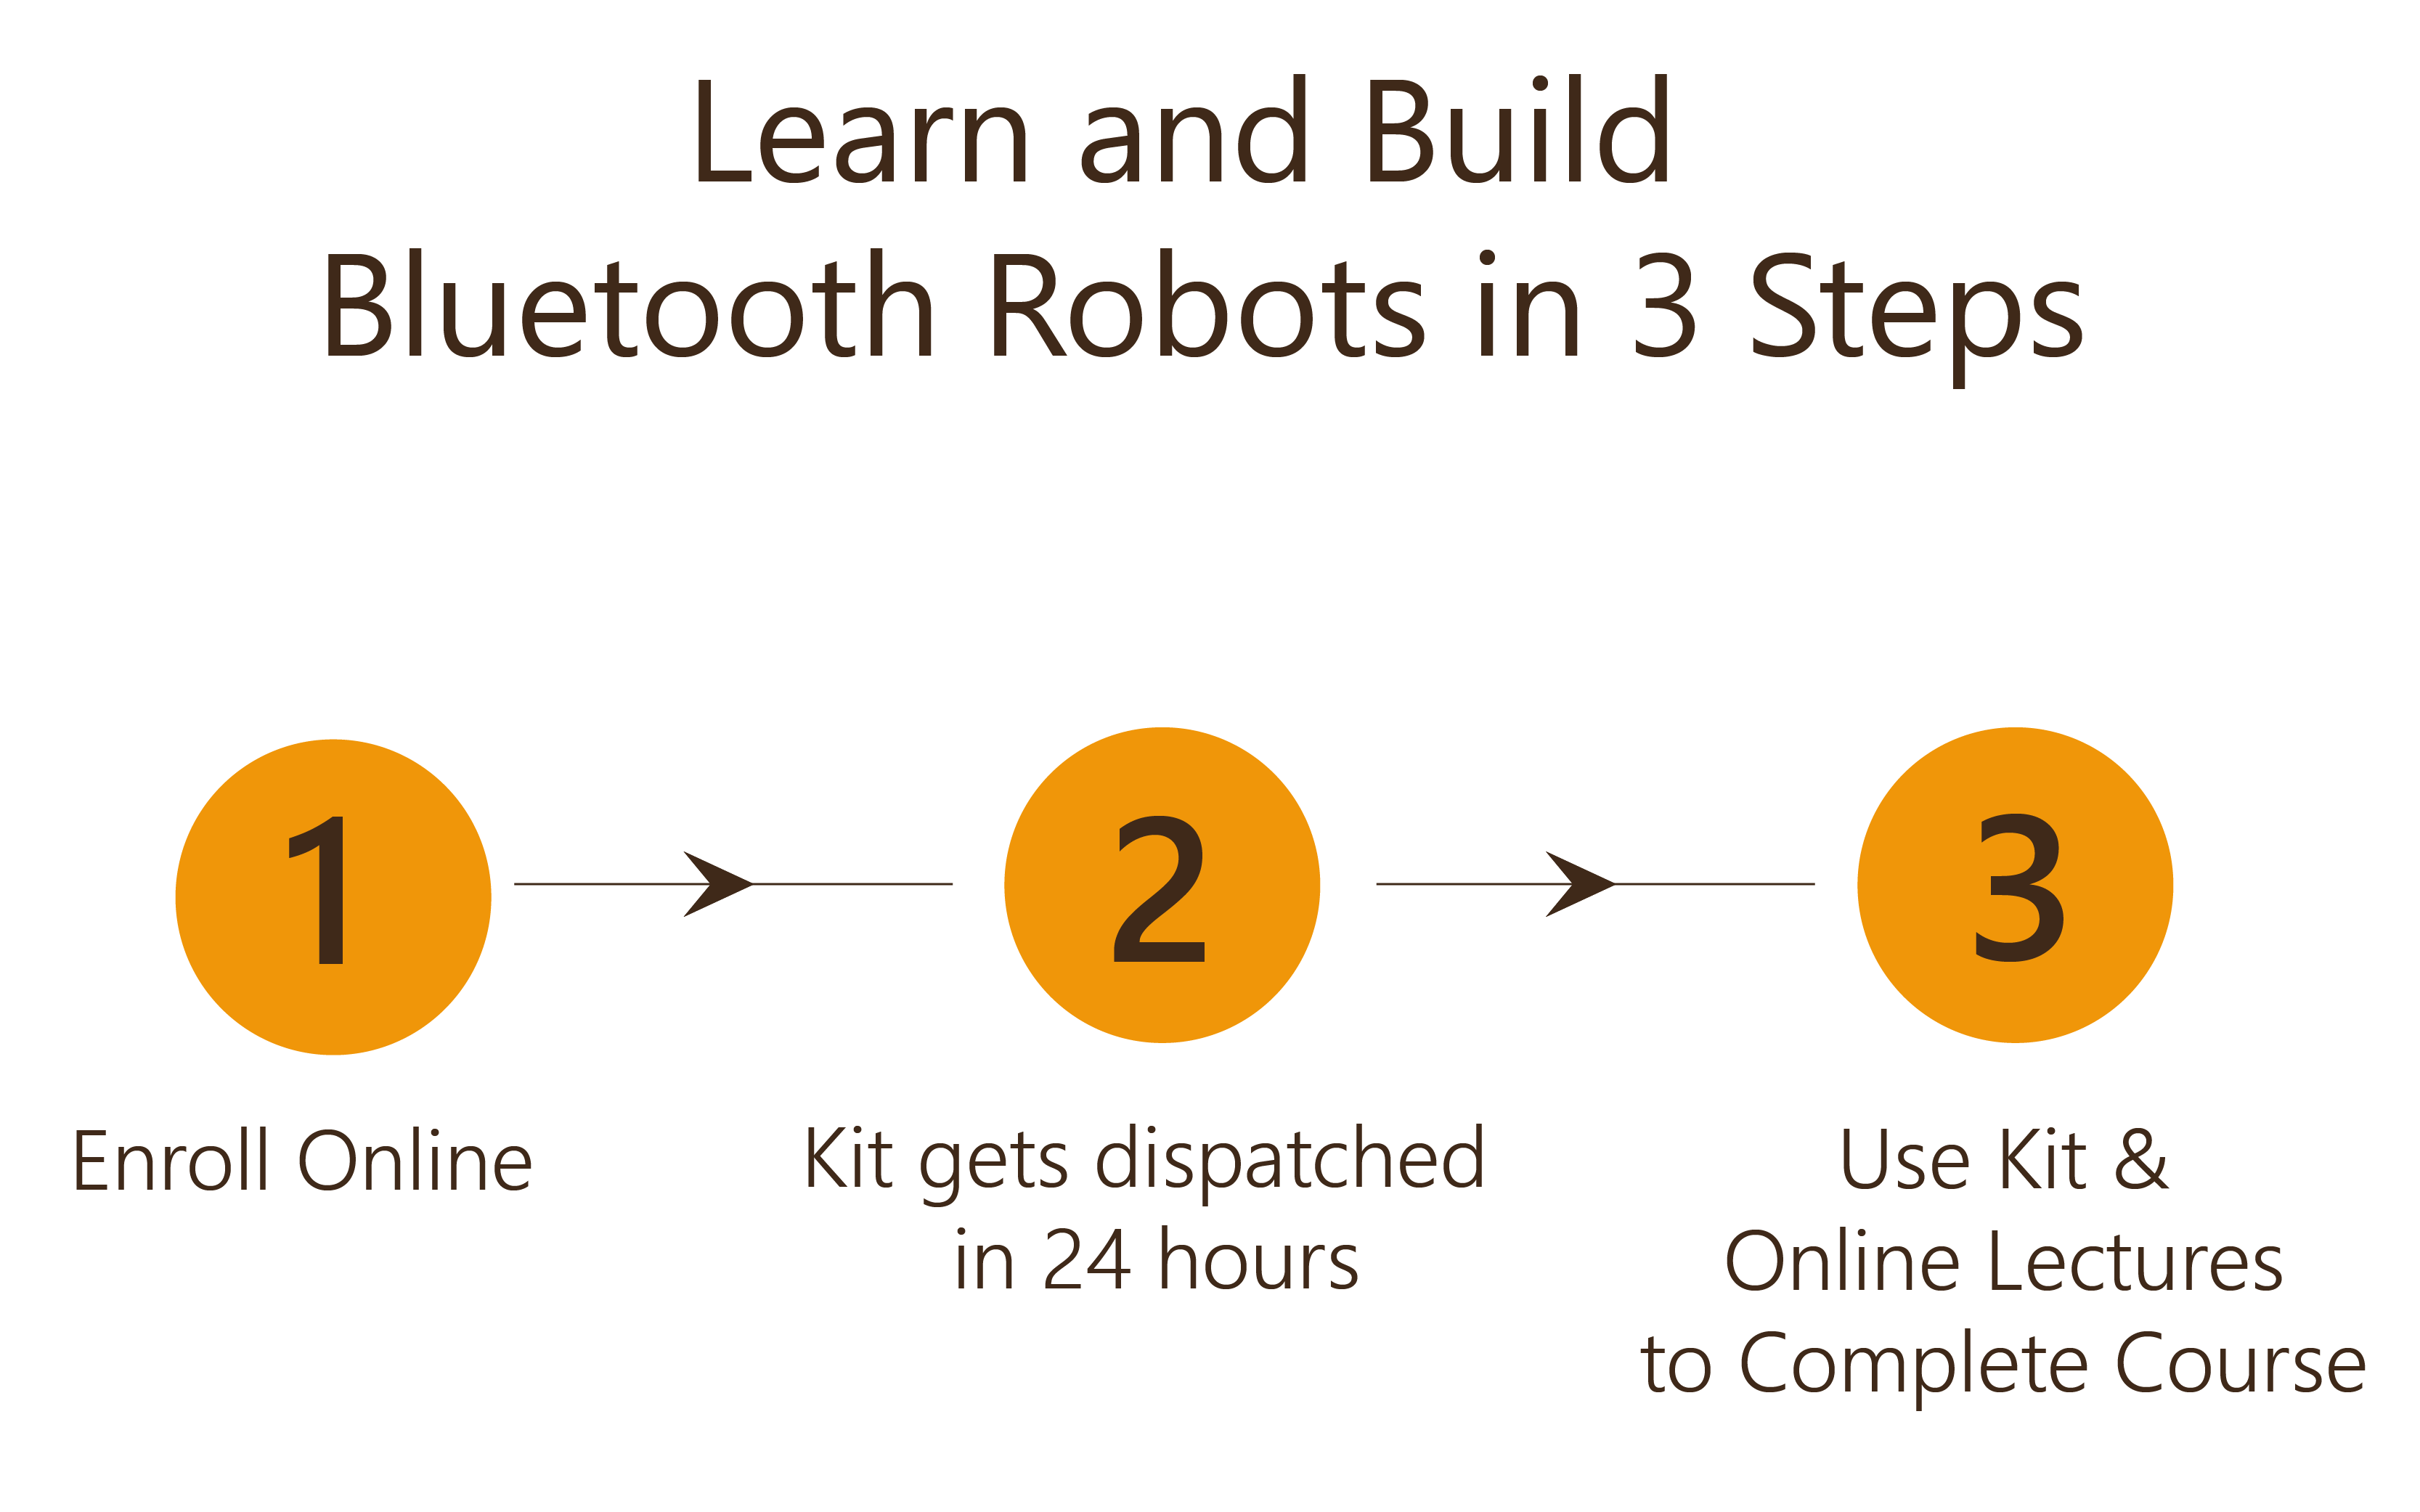 Learn and Build Bluetooth Robots in 3 Steps